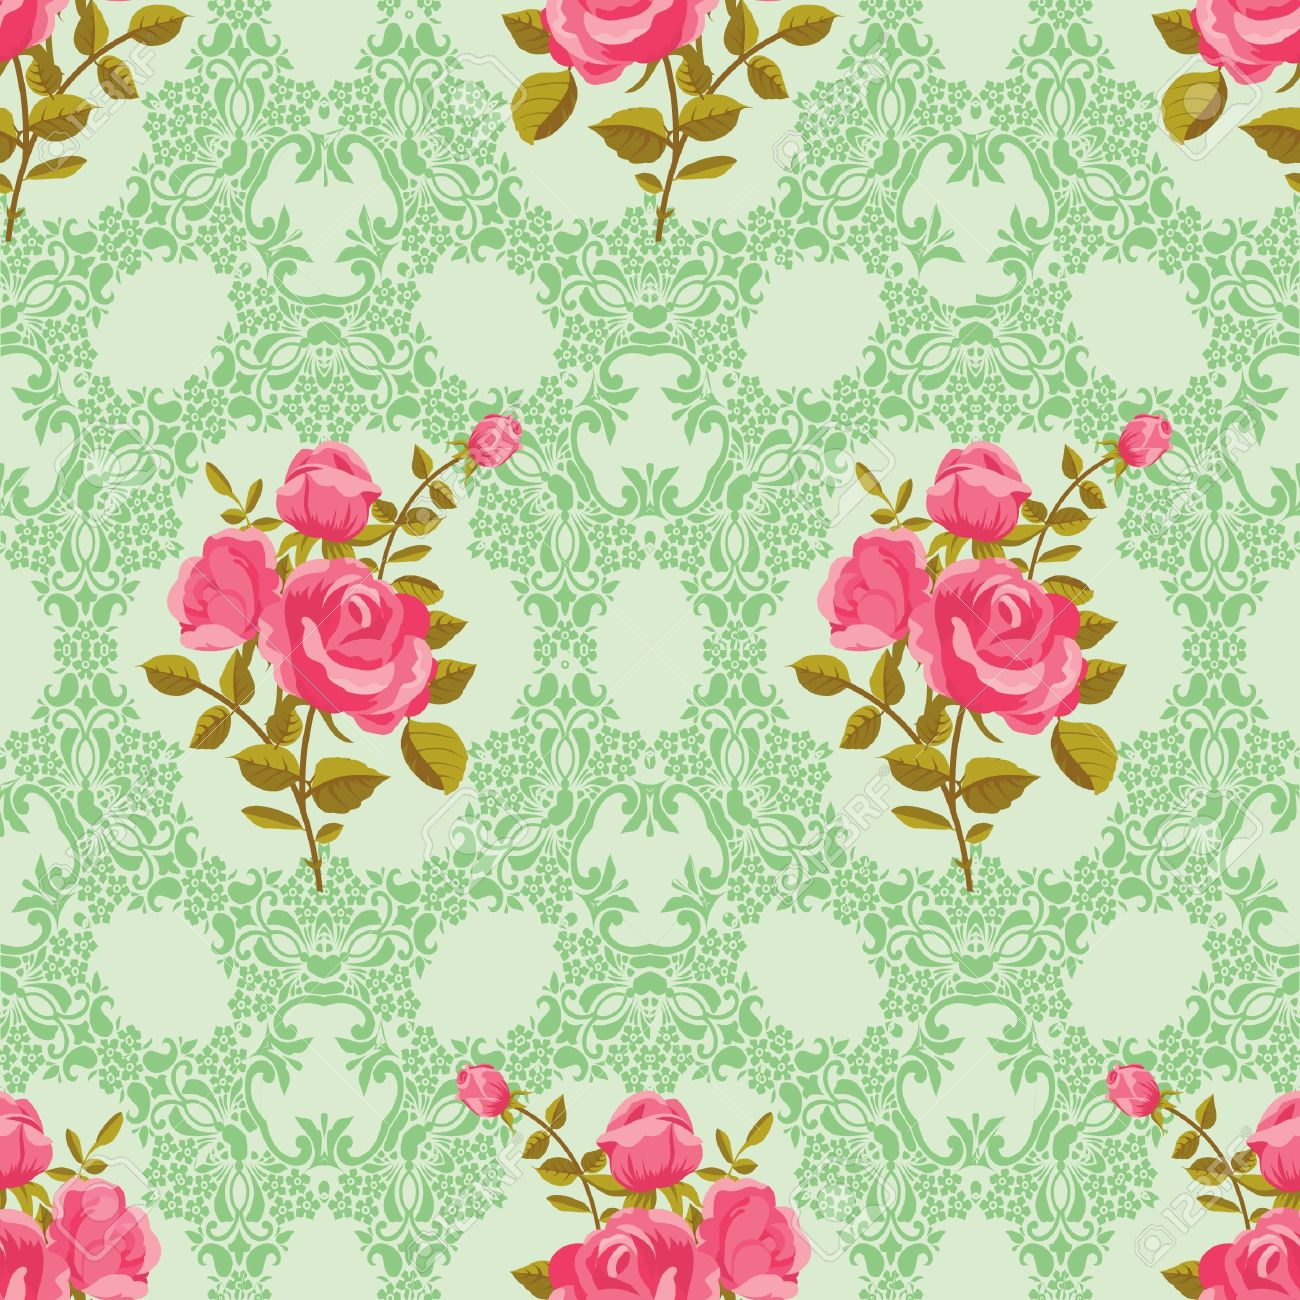 Vintage Rose Wallpaper Vector Vintage Wallpaper Rose